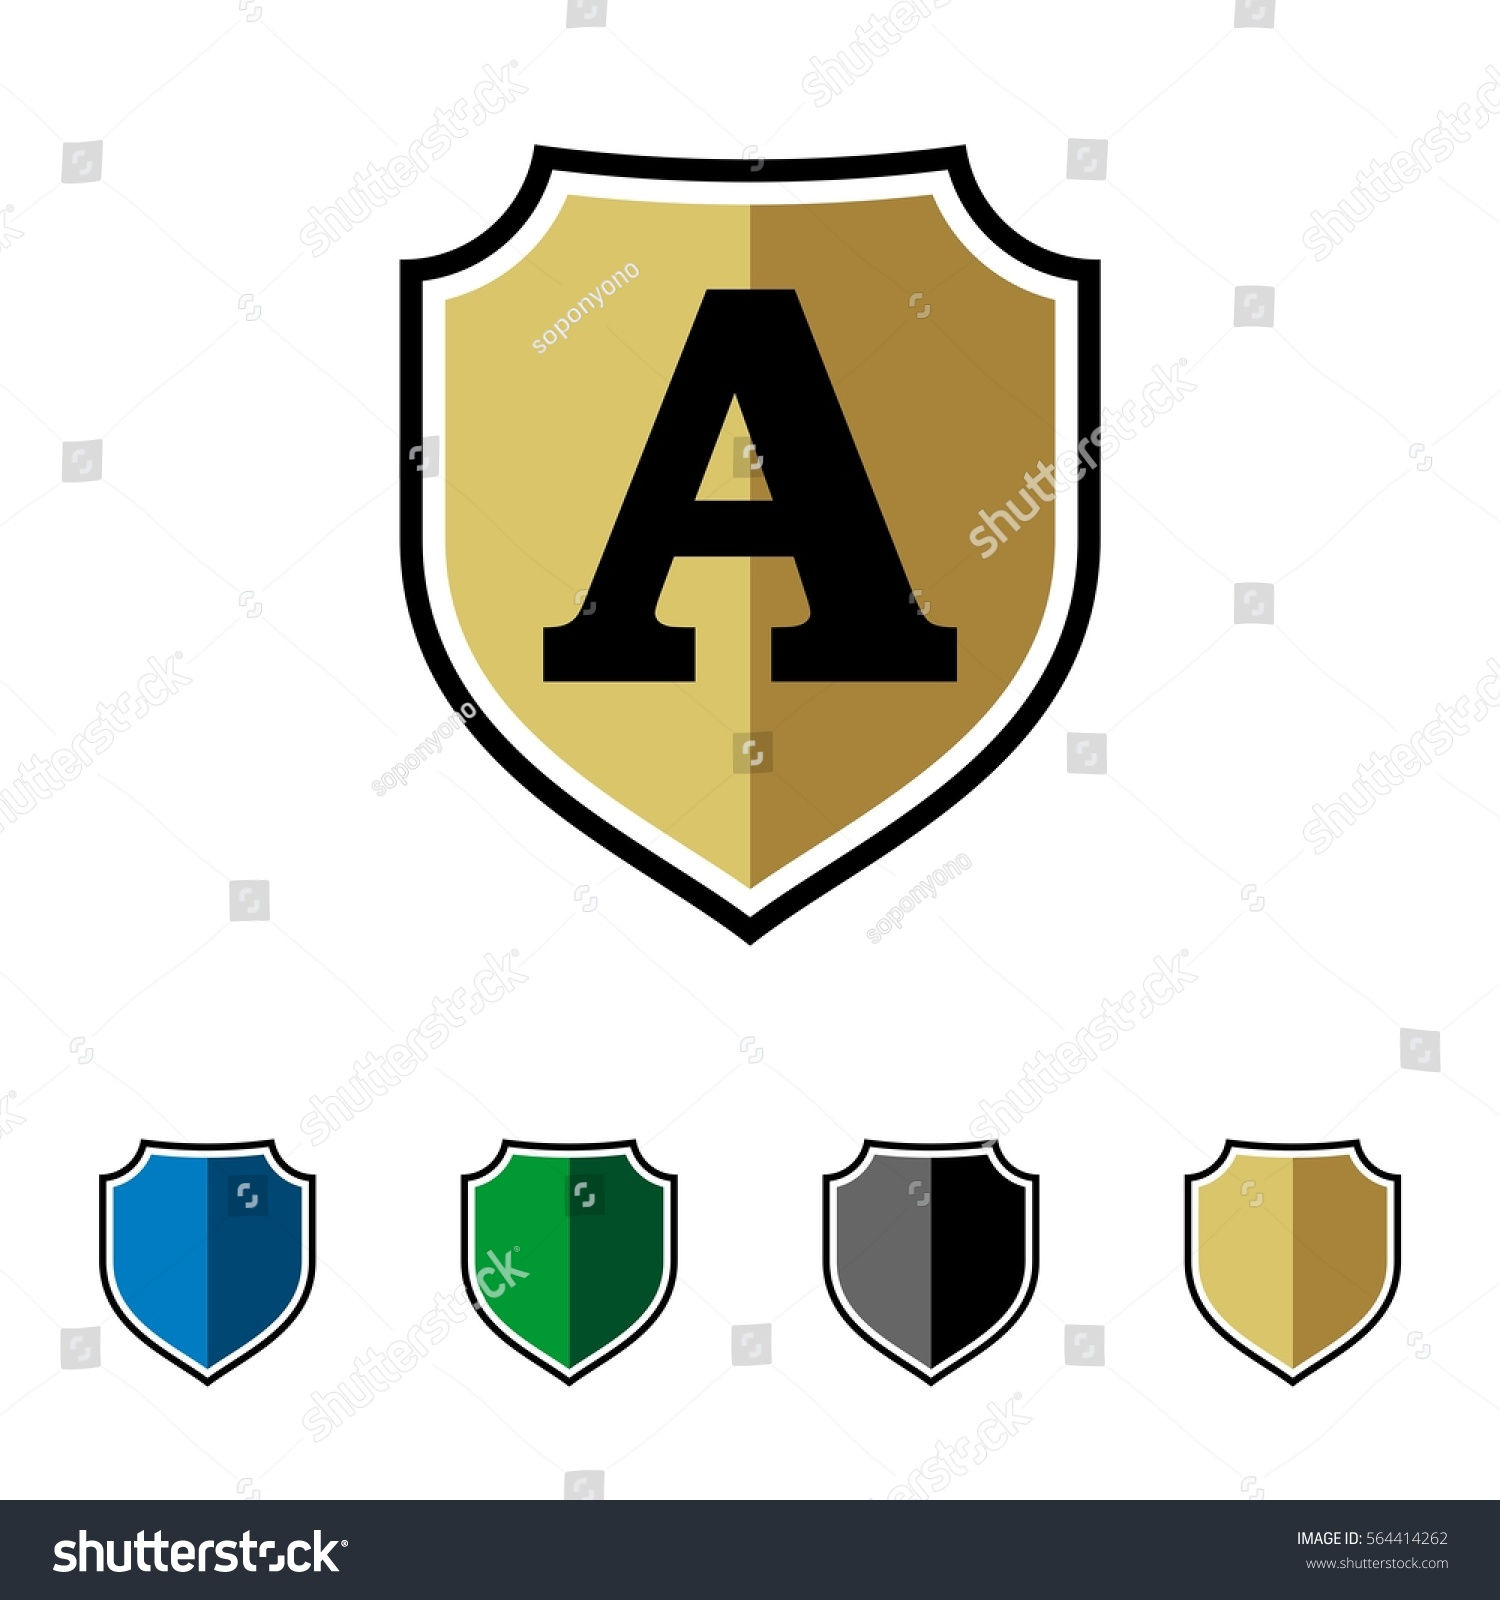 Initial Shield Logo Template Stock Vector 564414262 - Shutterstock